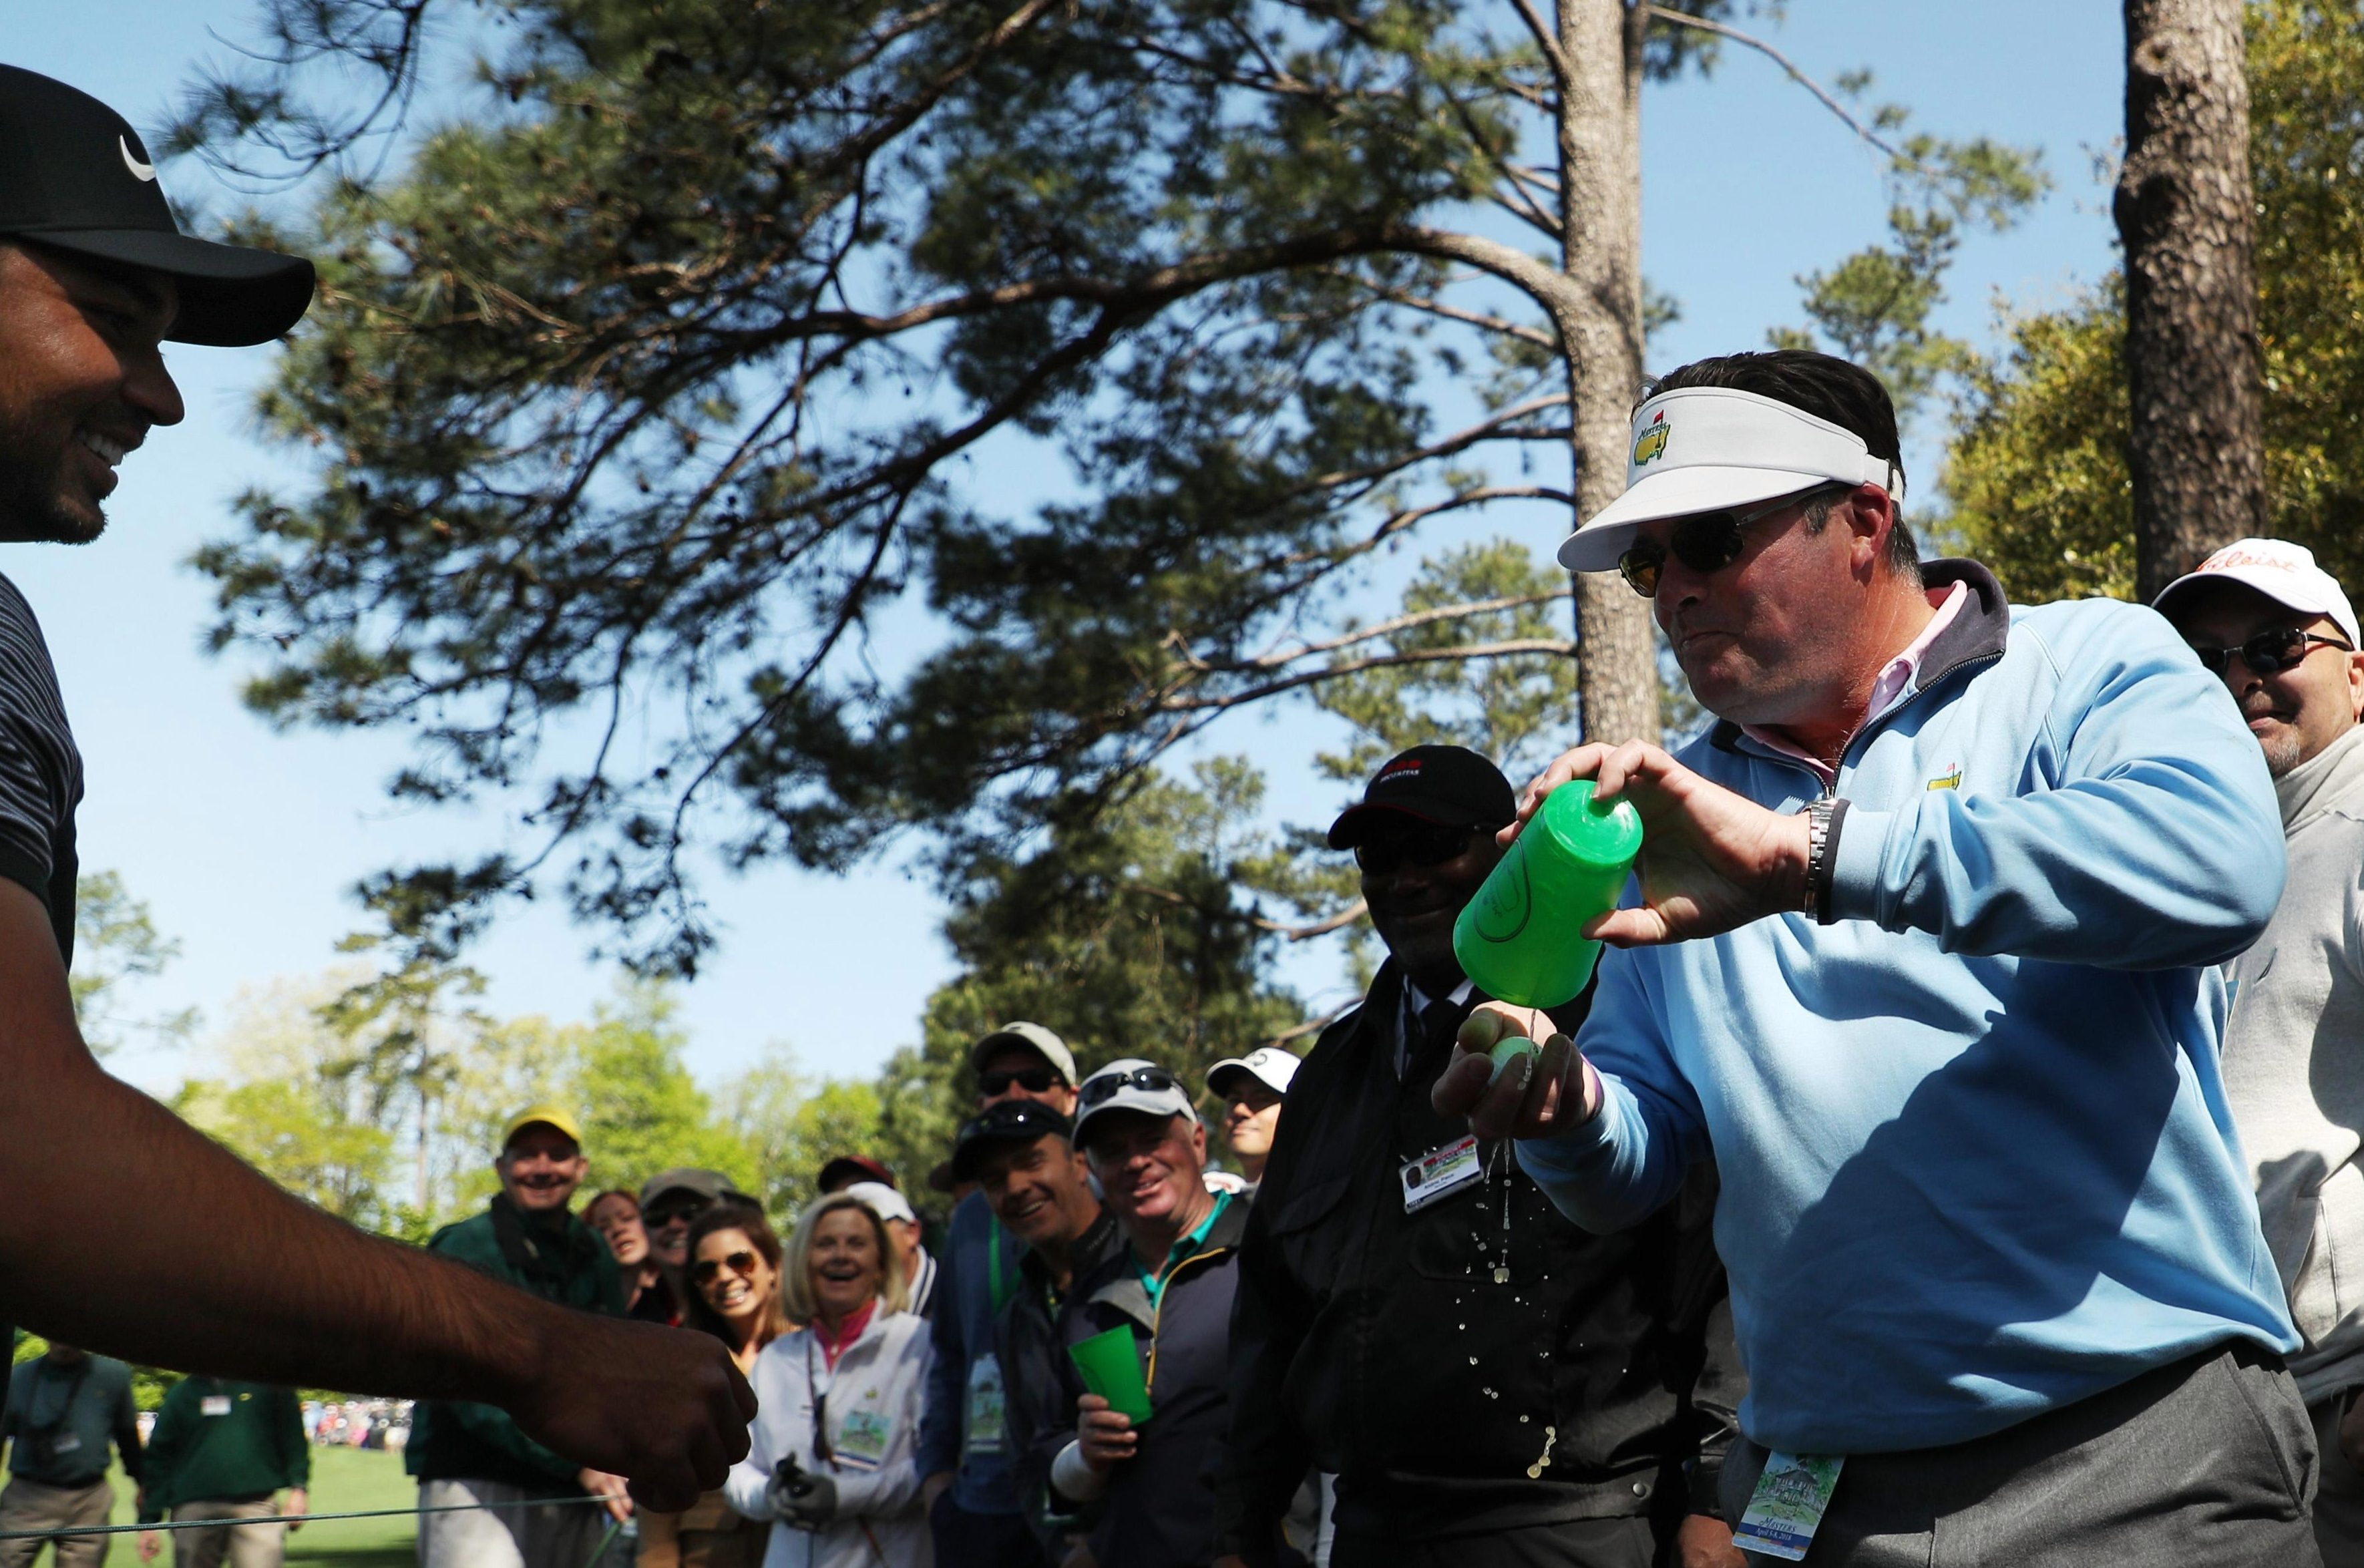 The patron shows Jason Day his cup is empty